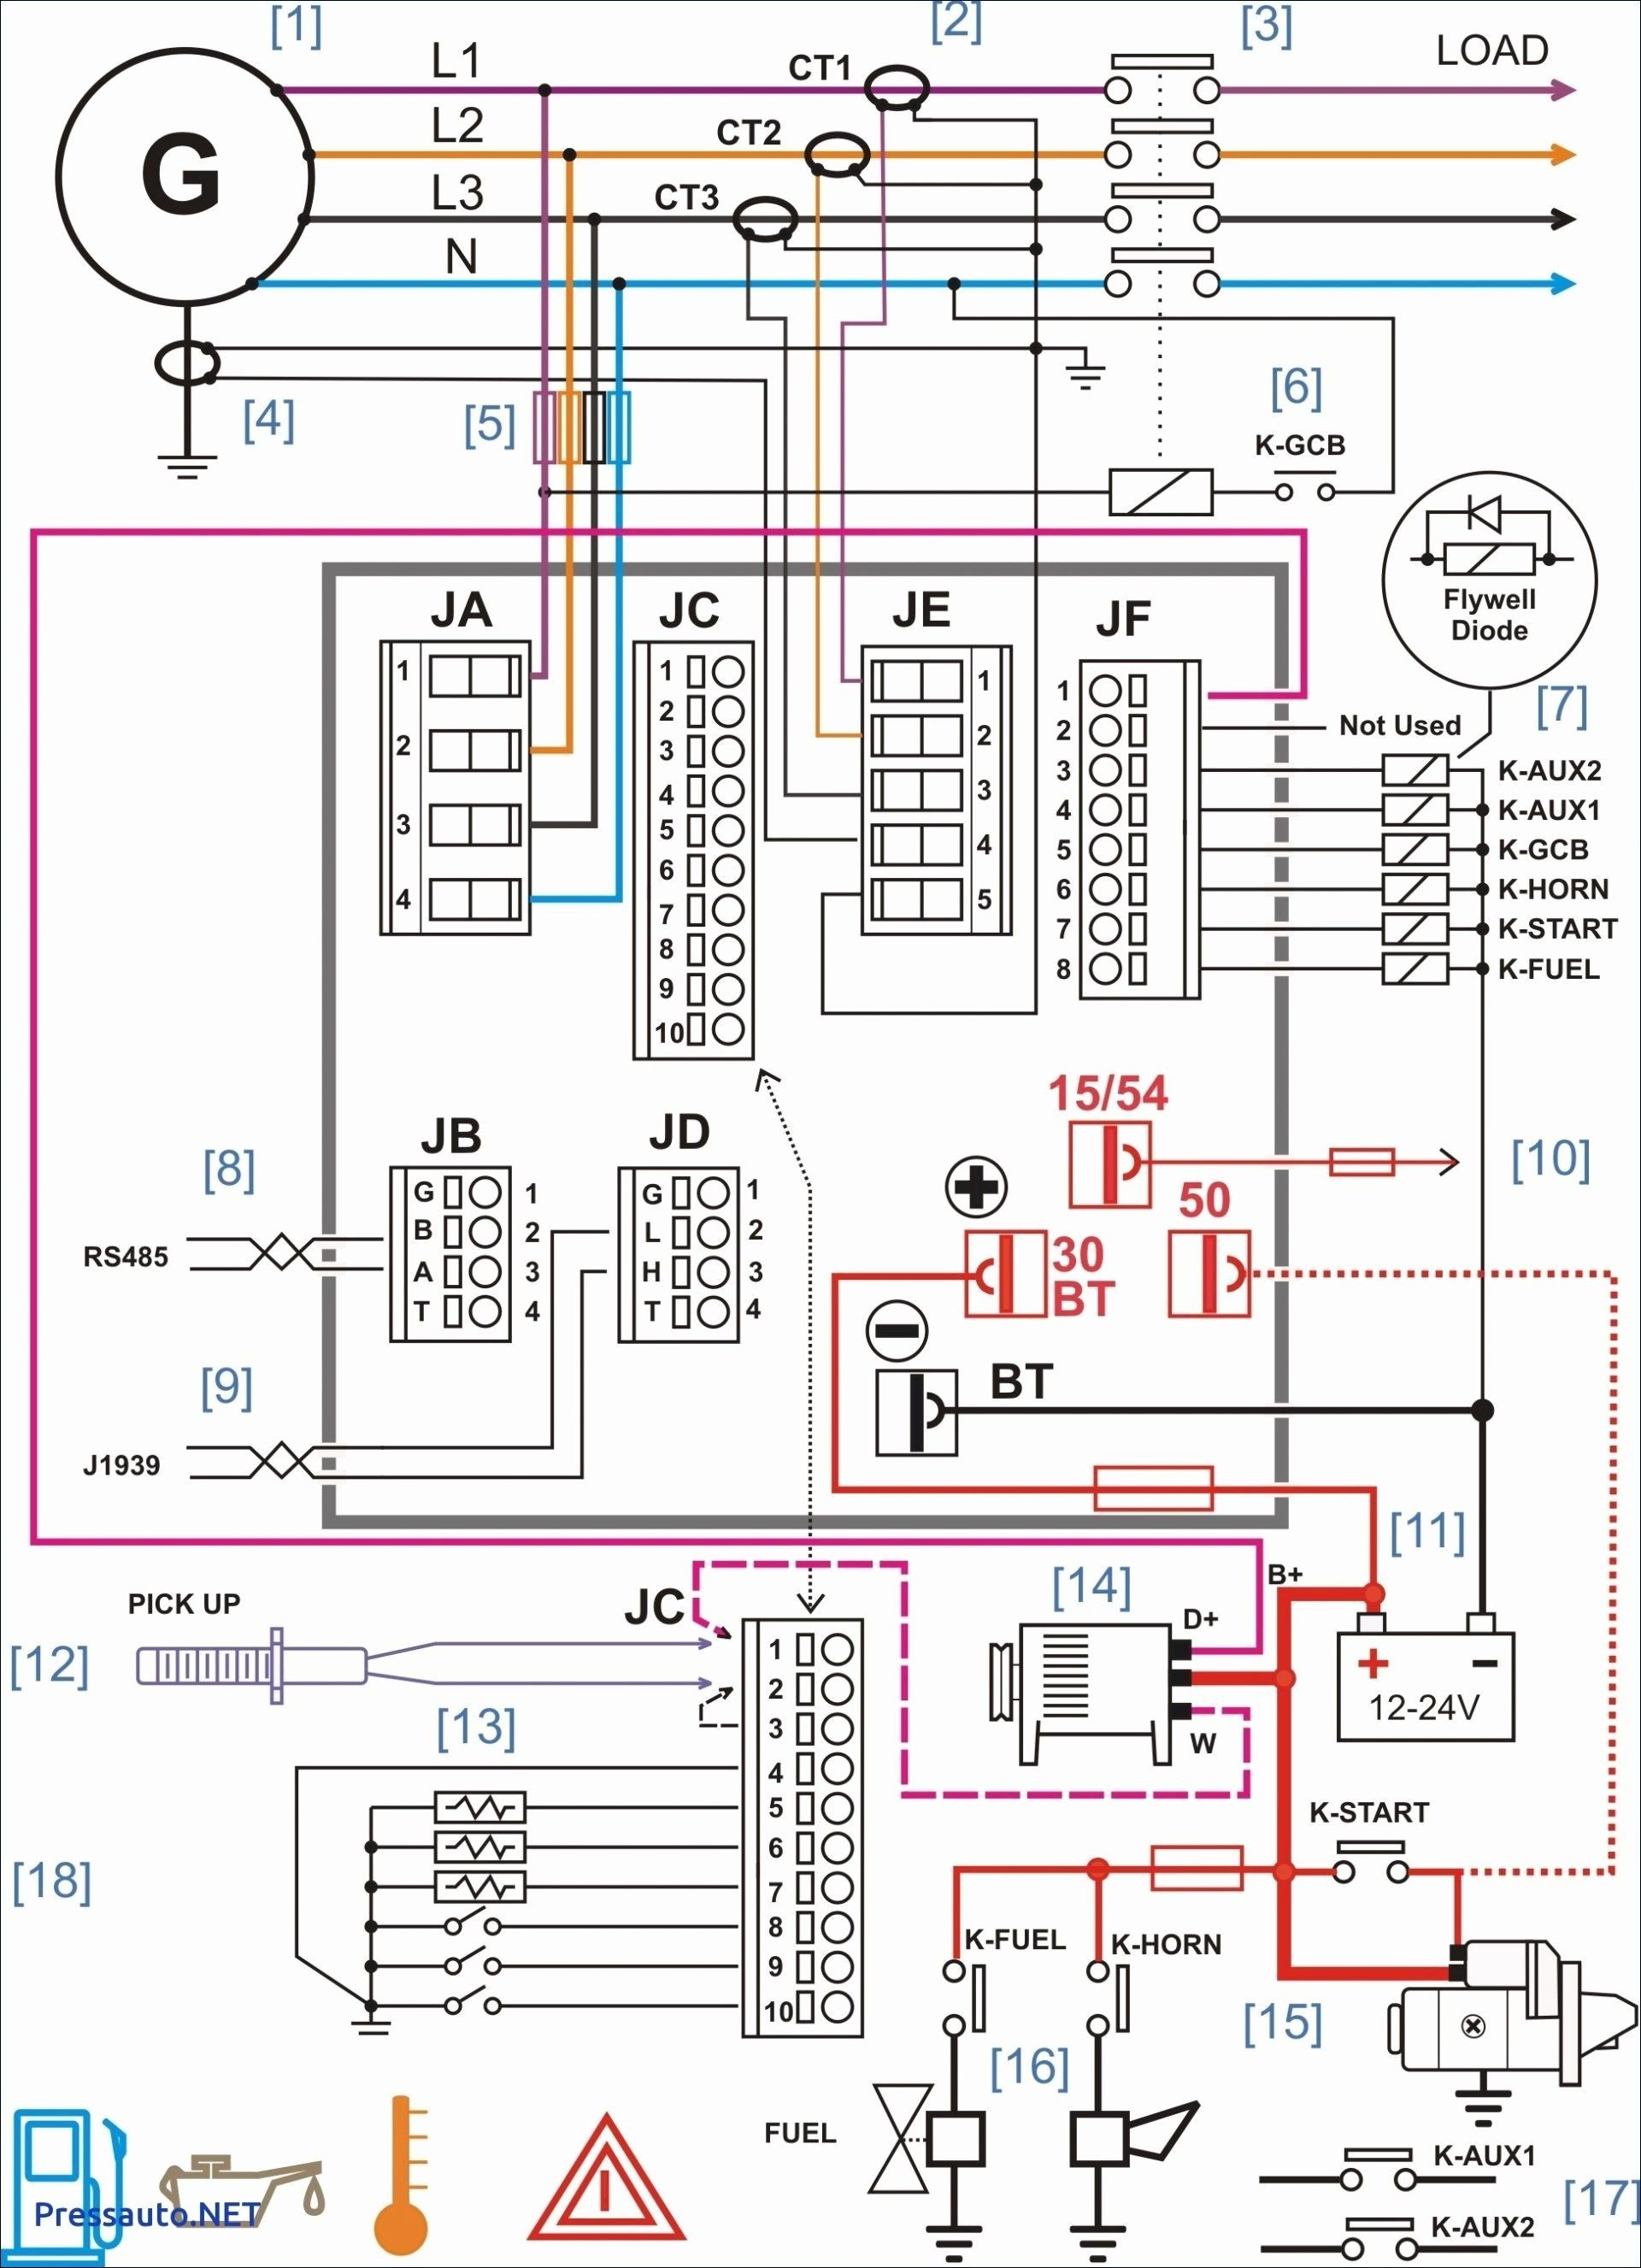 House Wiring Circuit Diagram Pdf Save Home Electrical Wiring Diagrams Awesome House Ele Electrical Circuit Diagram Electrical Diagram Electrical Wiring Diagram